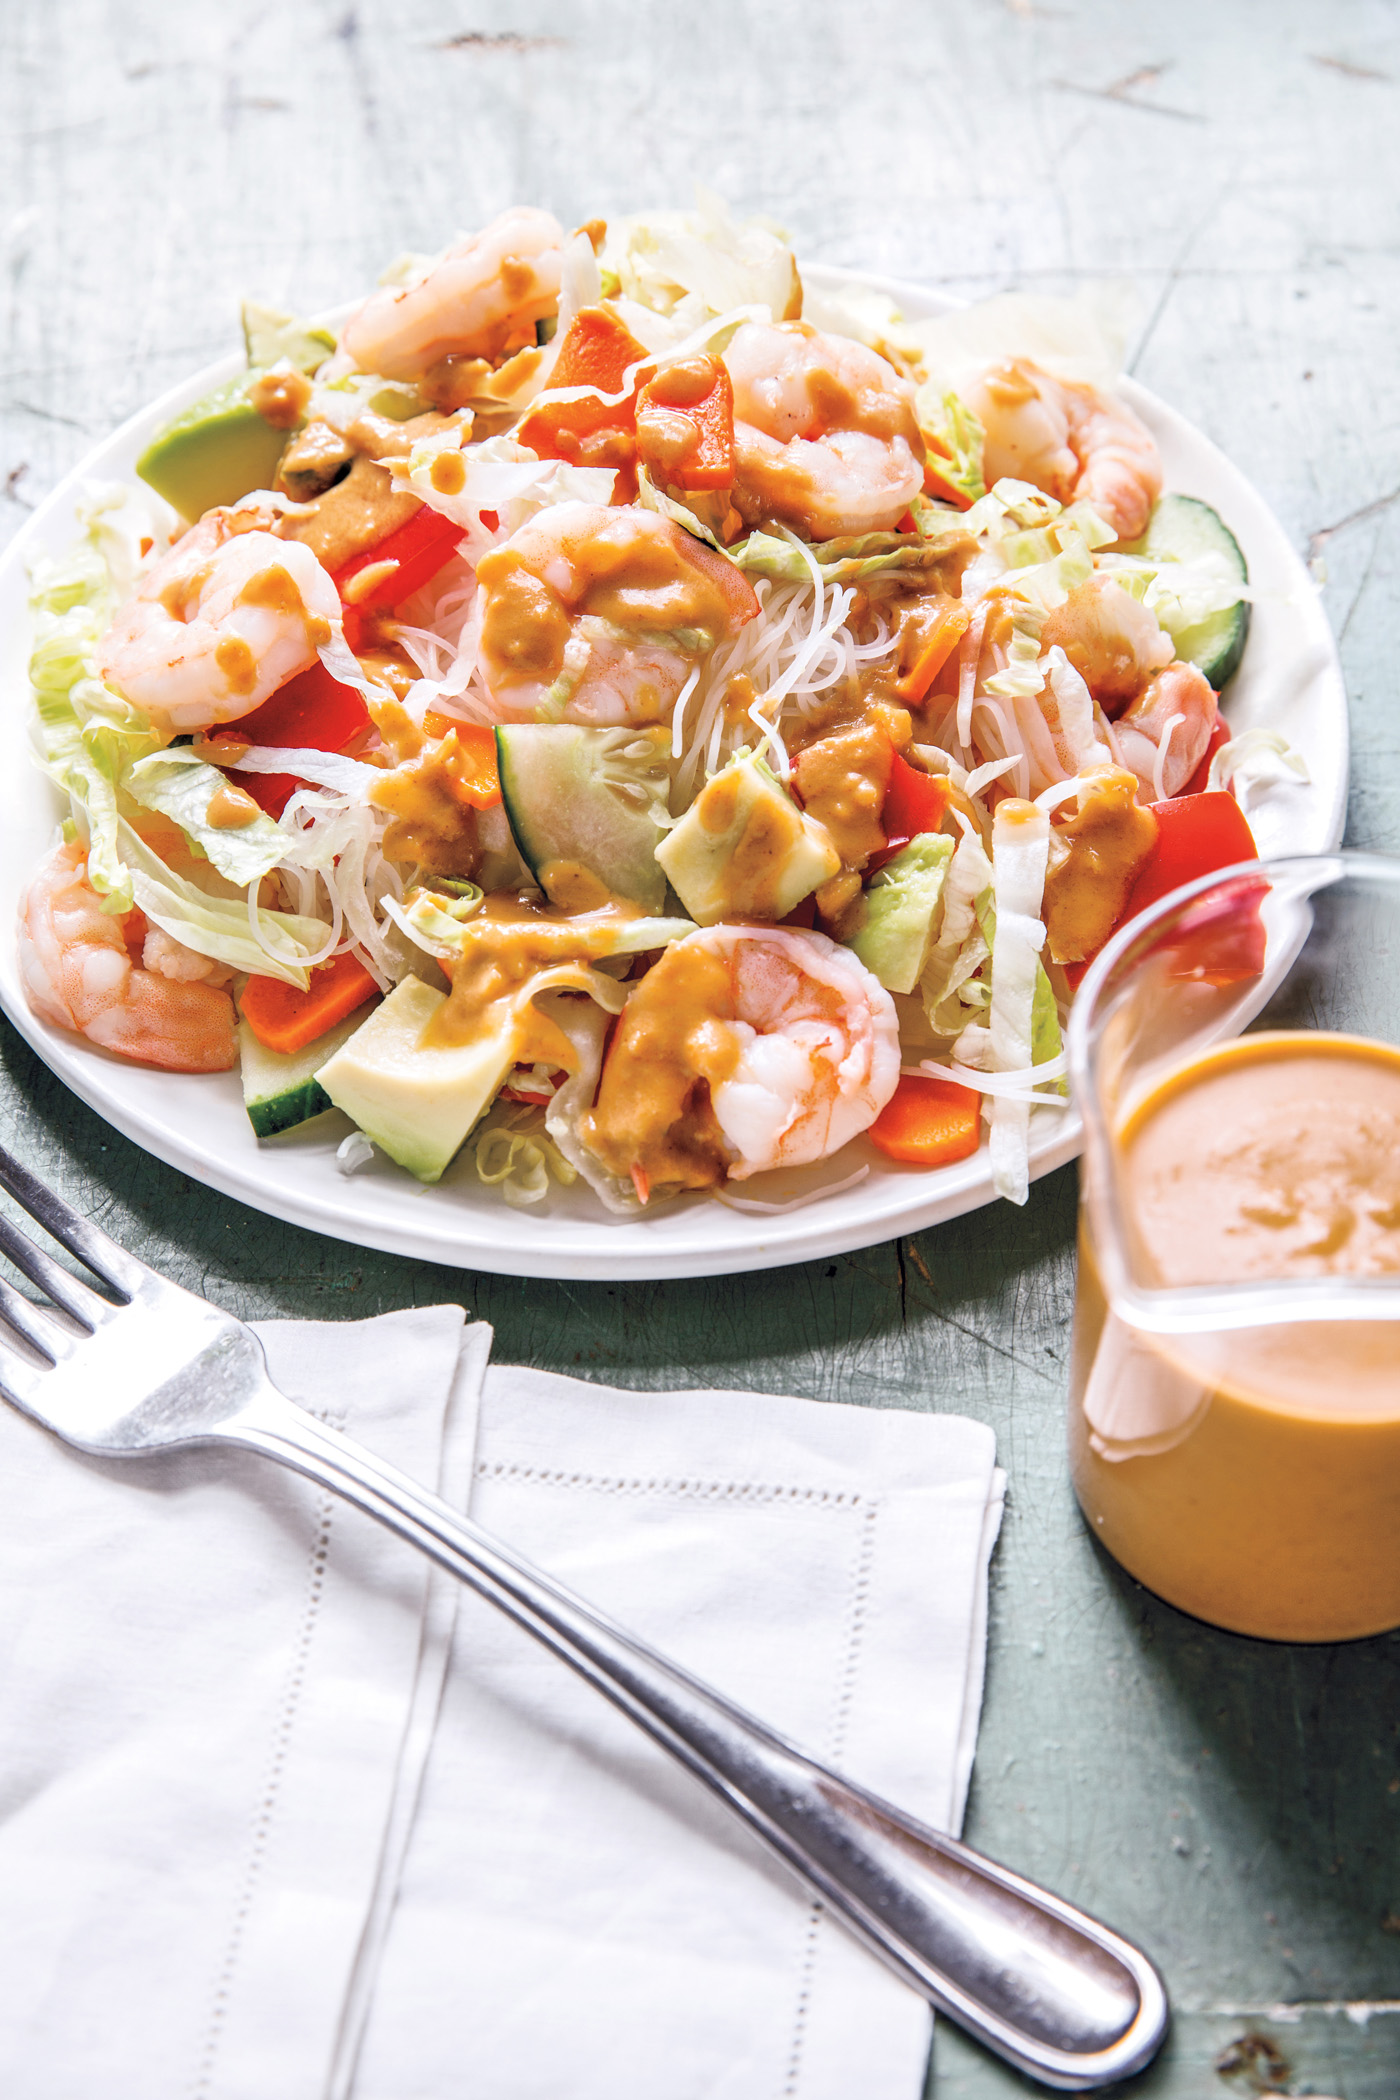 Peanut Sauce recipe from The Dinner Plan cookbook by Caroline Campion and Kathy Brennan | featured at Cool Mom Eats (Photos by Maura McEvoy)